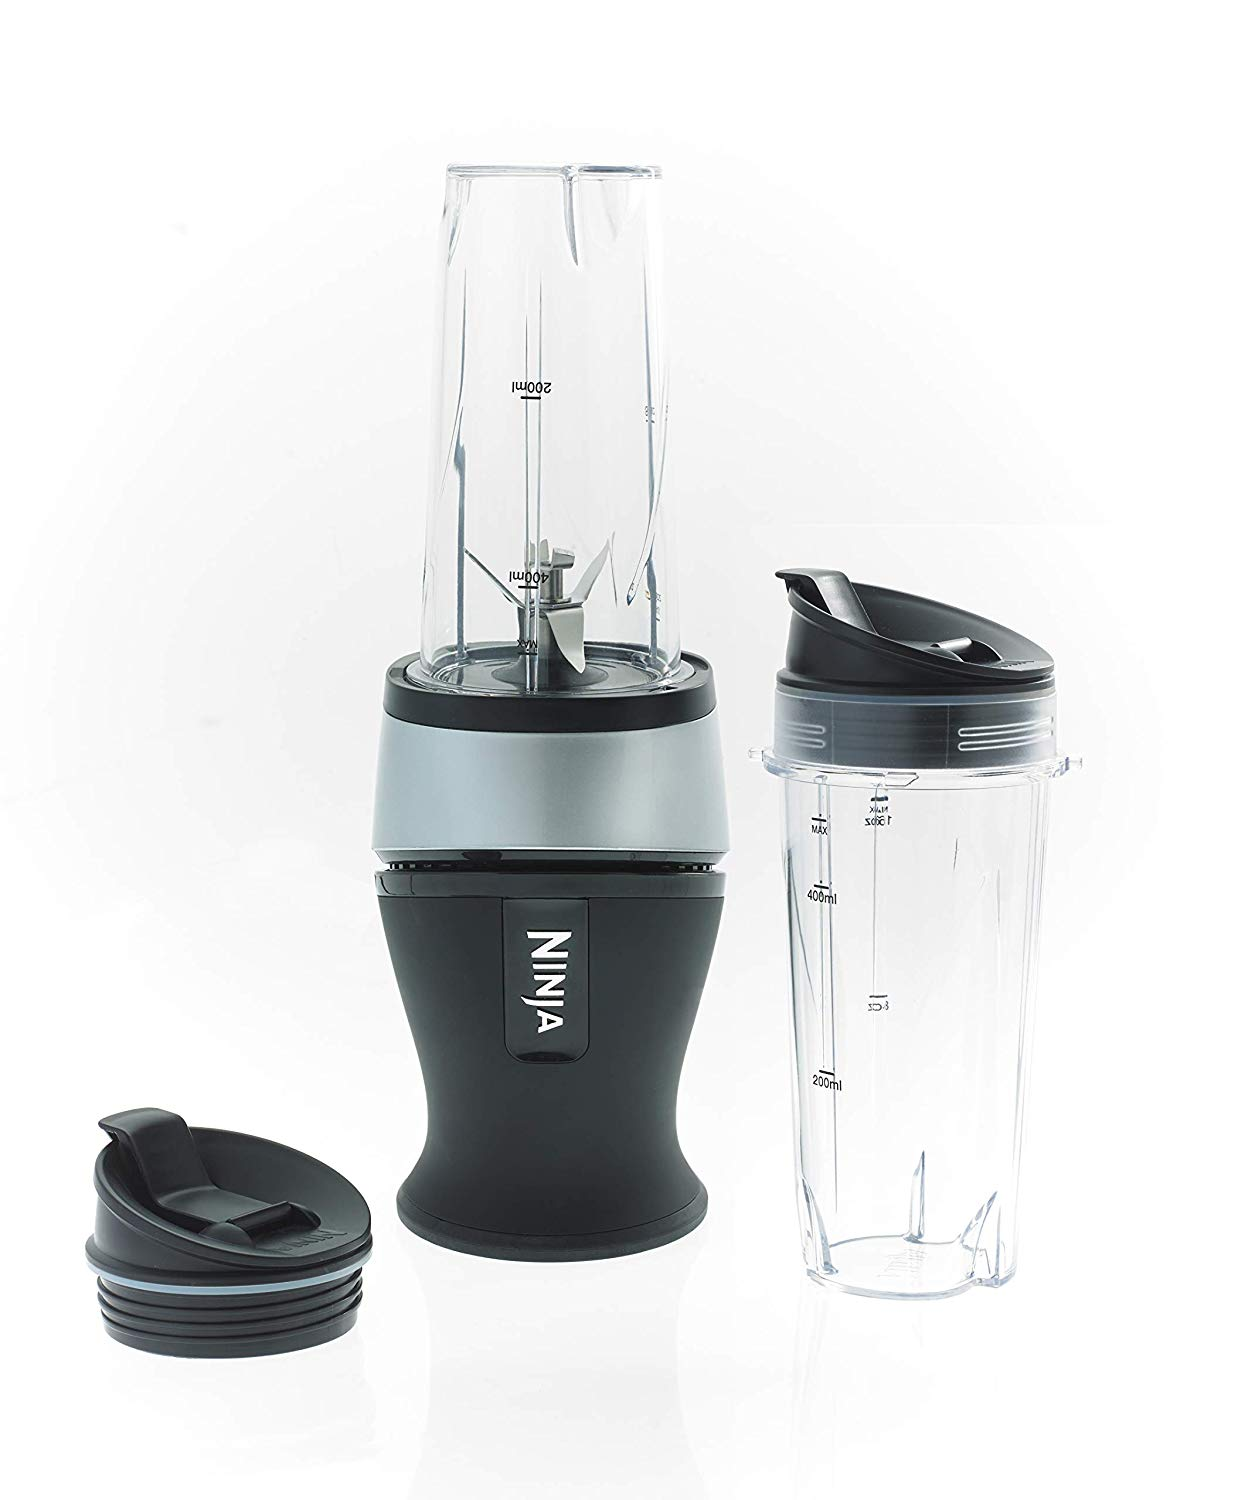 Ninja Slim Blender and Smoothie Maker 700 W, Black and Silver